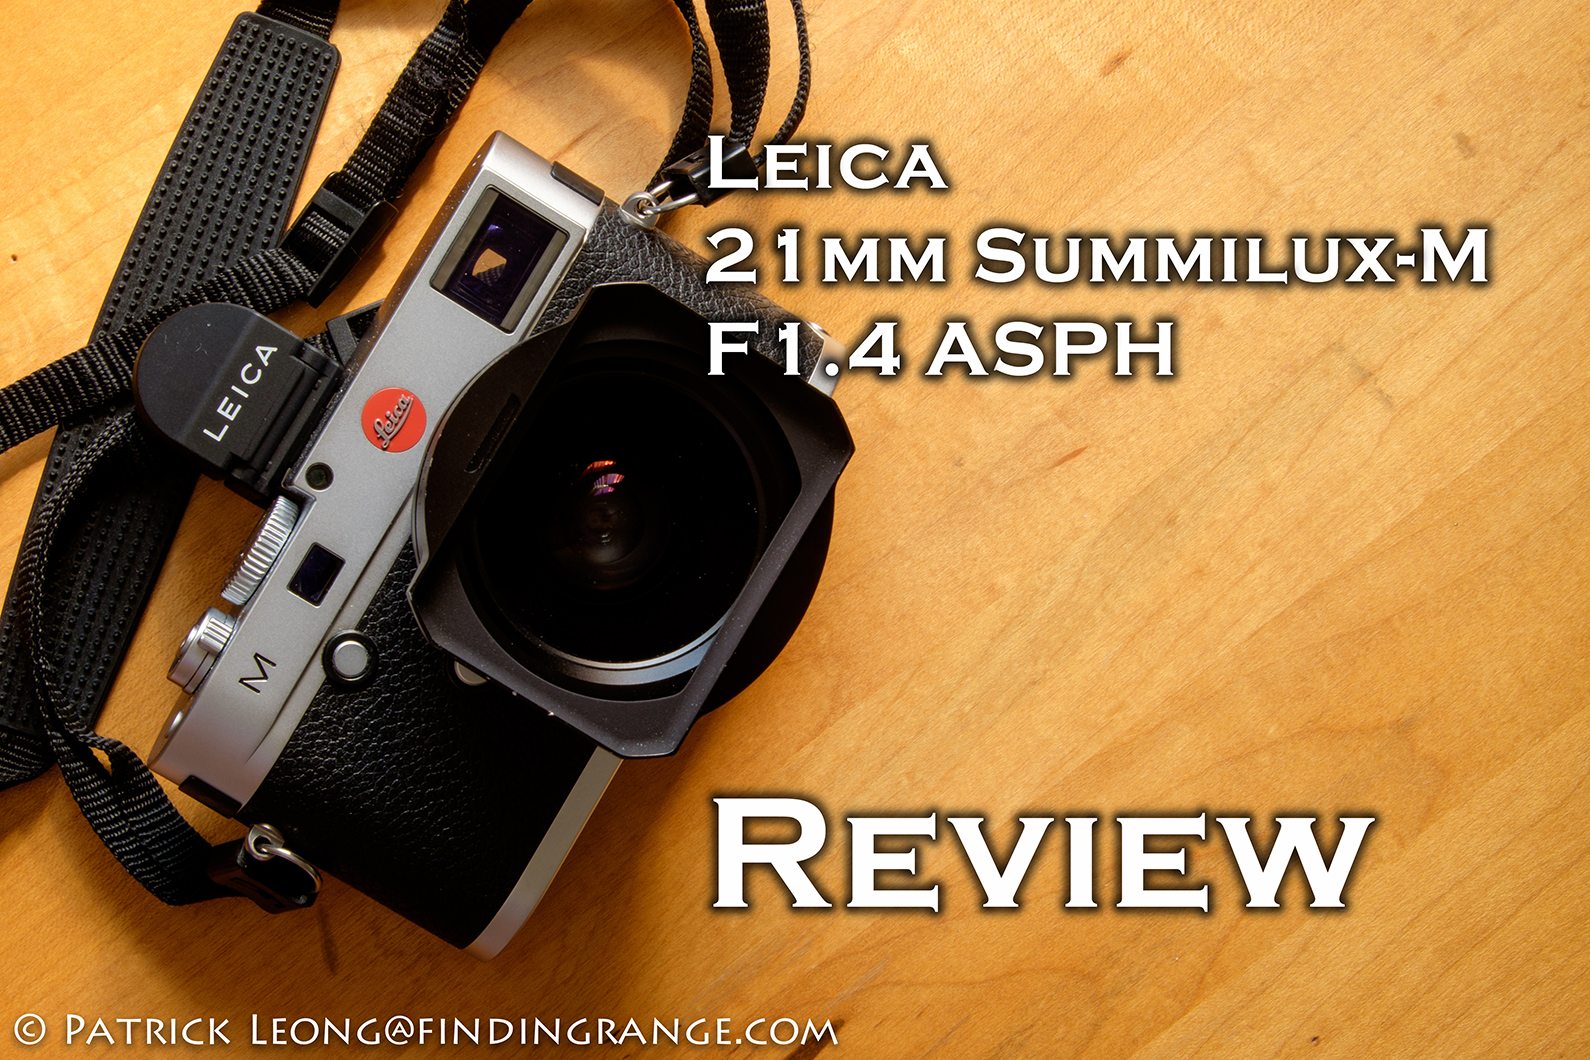 Leica 21mm Summilux-M F1 4 ASPH Review